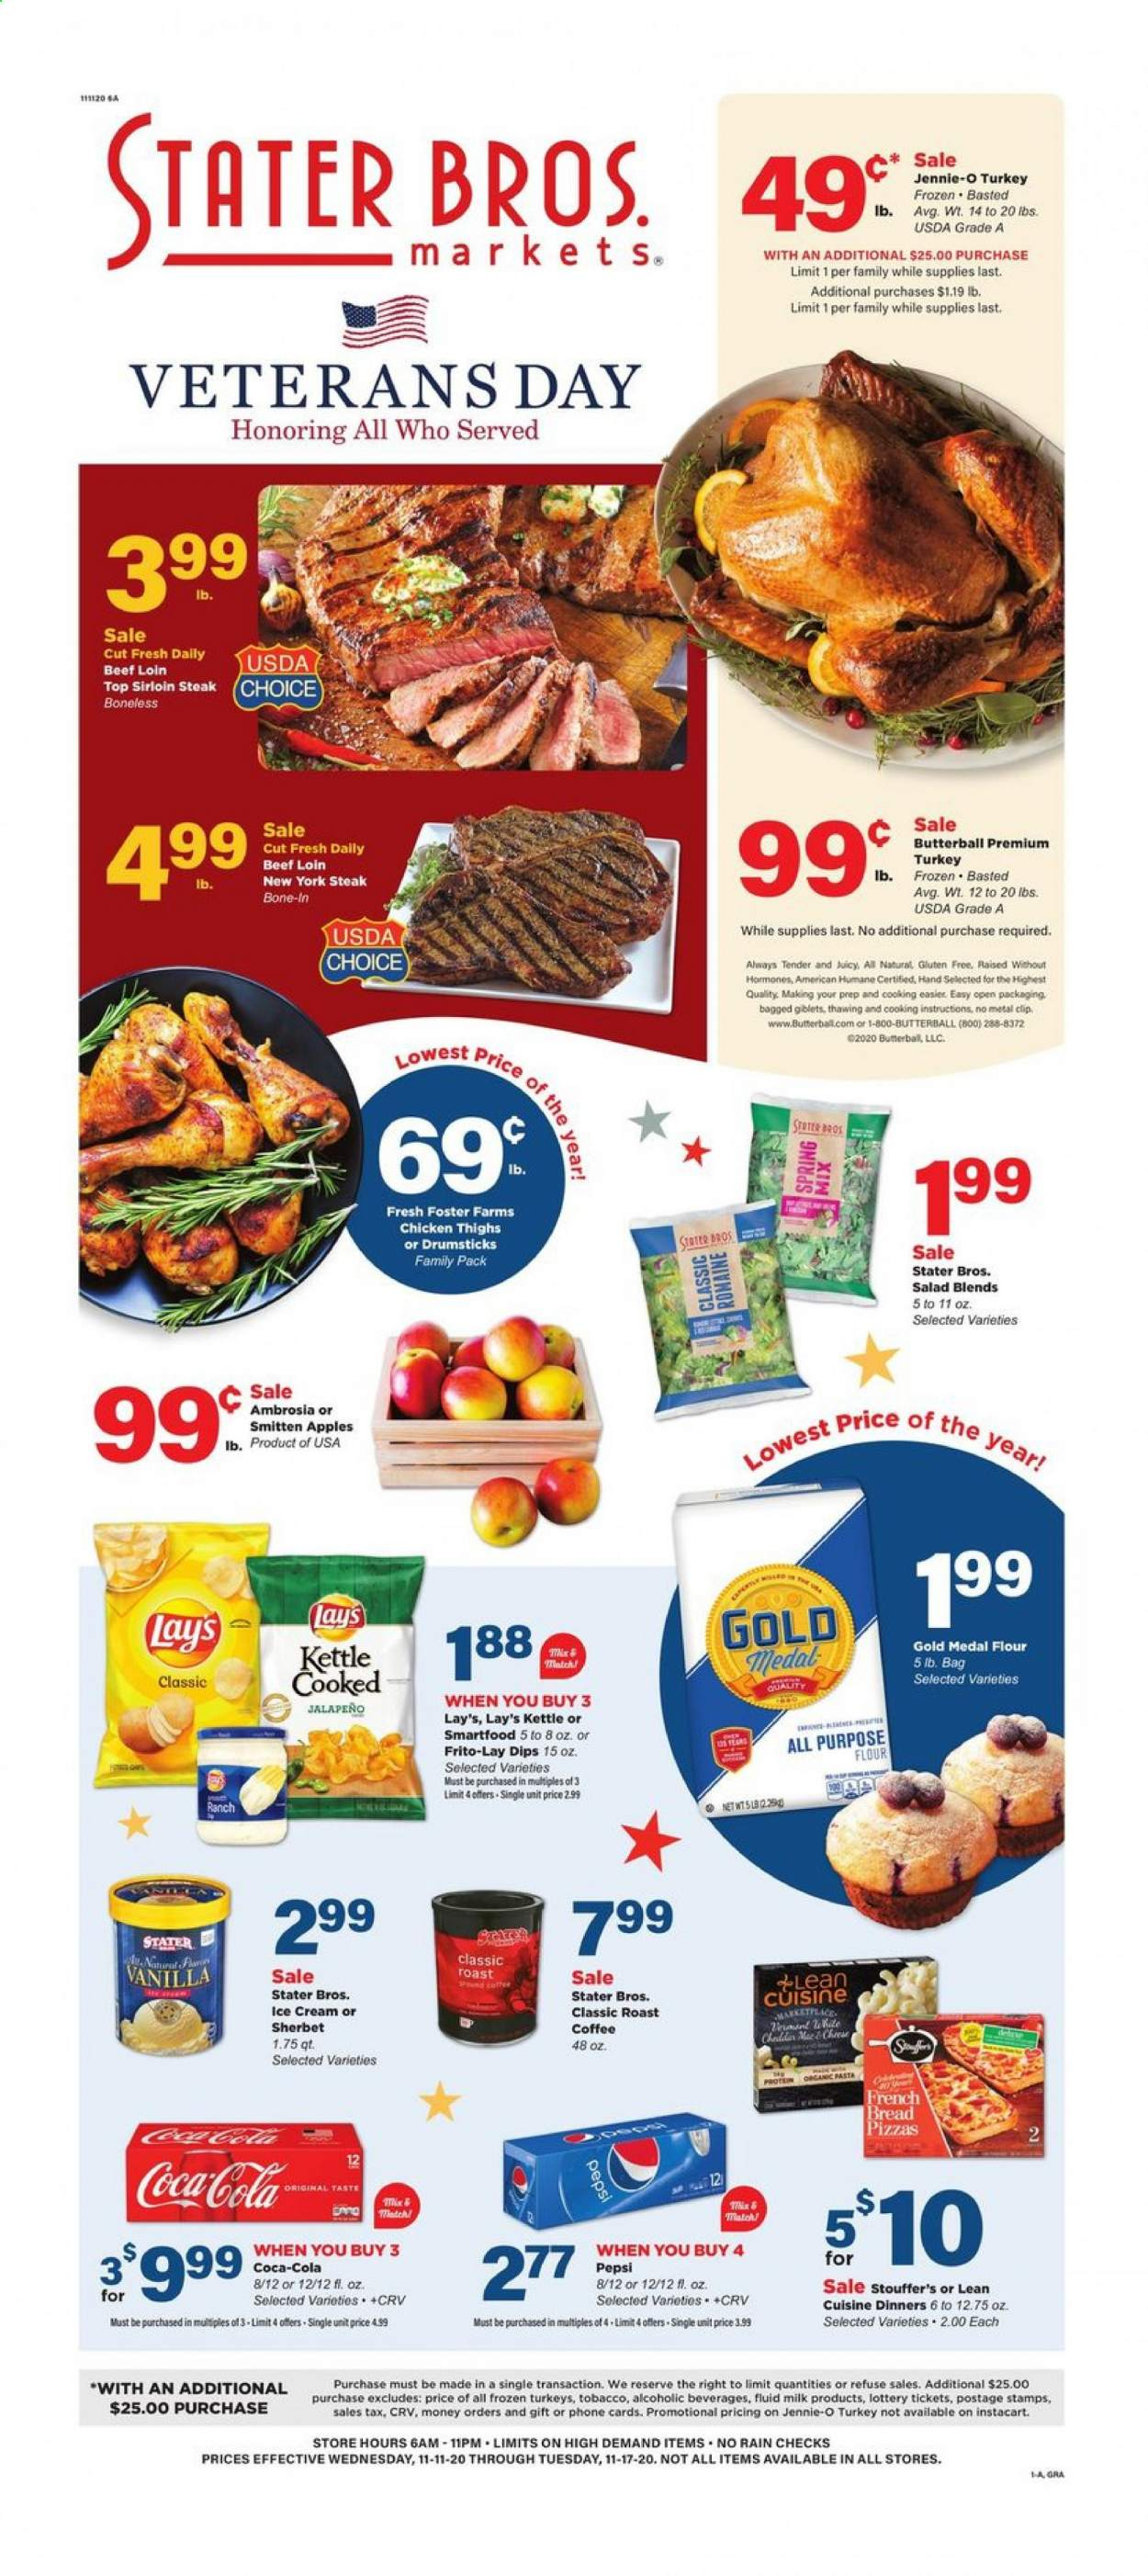 Stater Bros. Flyer - 11.11.2020 - 11.17.2020 - Sales products - all purpose flour, apples, beef meat, bread, Butterball, coca-cola, coffee, flour, frozen, milk, turkey, ice cream, chicken, Pepsi, chicken thighs, steak, sherbet, pasta, AVG, Lay's, salad, jalapeño, Apple, kettle, phone, spring. Page 1.